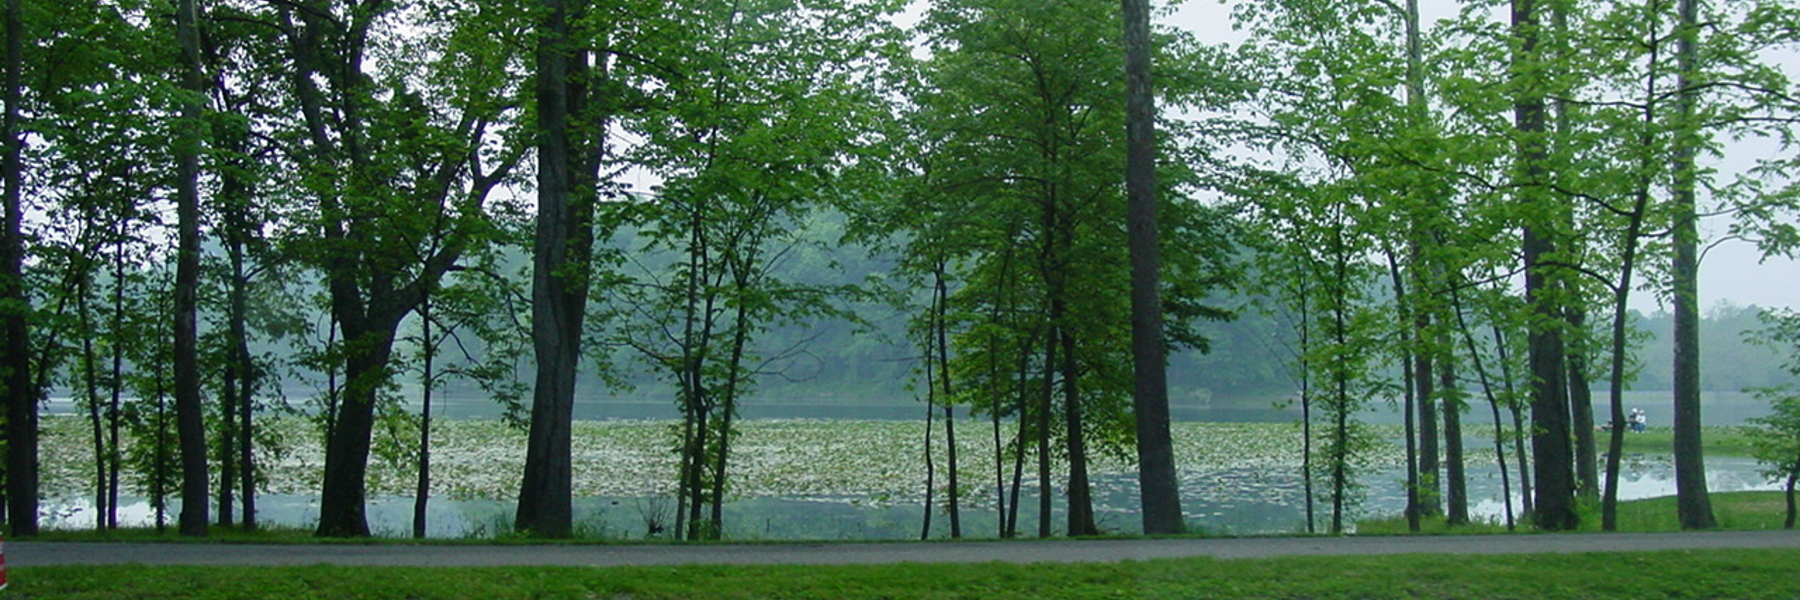 Path View of Trees and Lake